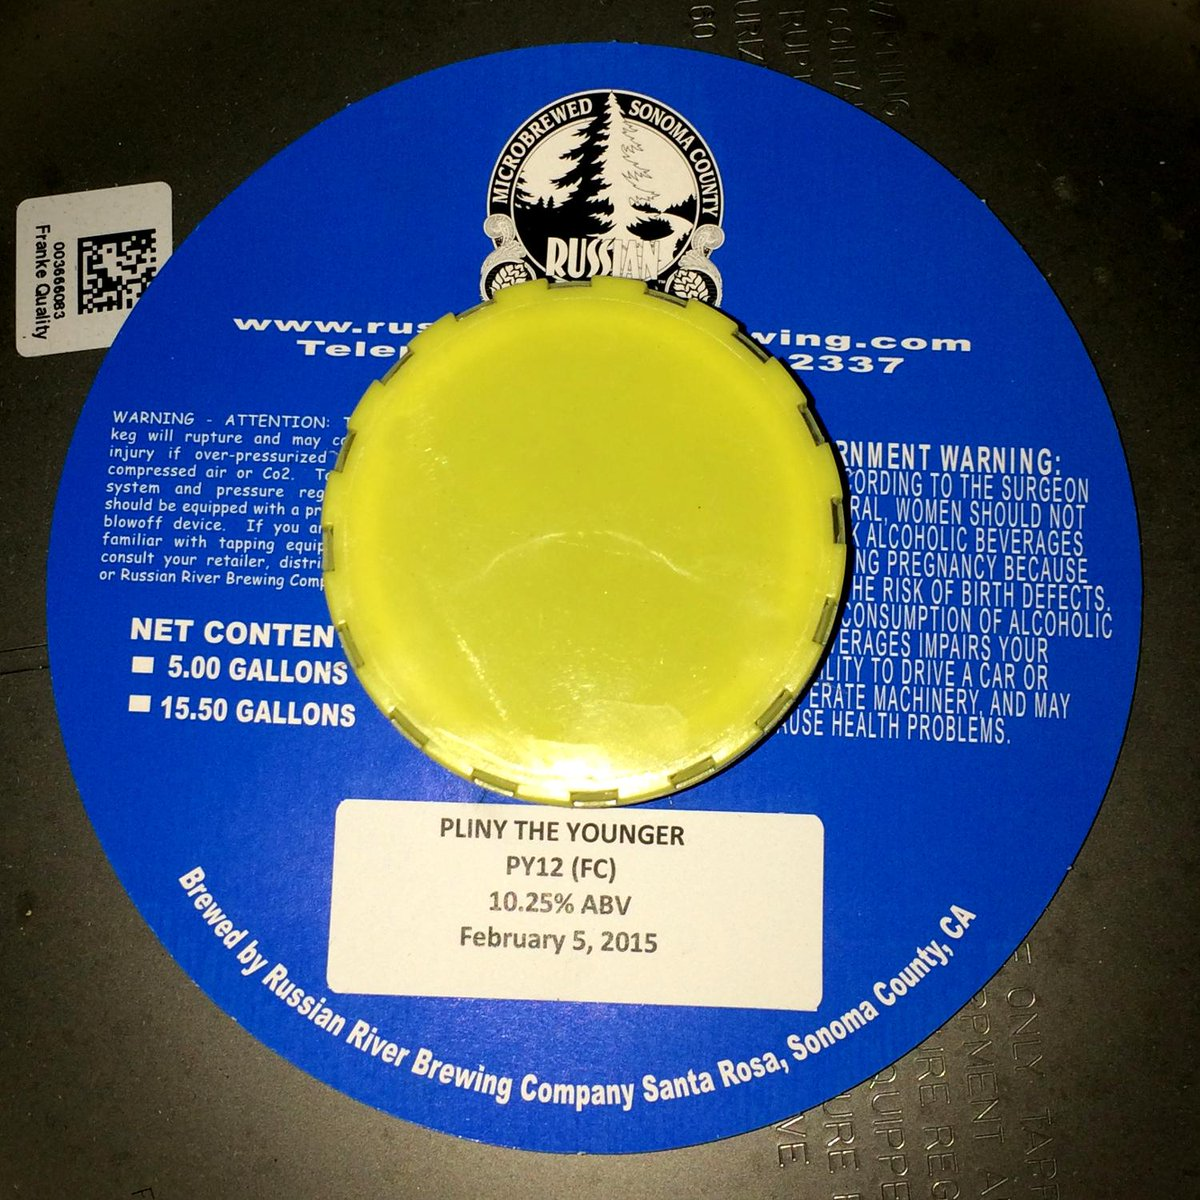 #PlinyTheYounger is tonight! Doors open at 6pm and #PTY pours at 8pm! Lots of other #RussianRiver beers on draft too! http://t.co/dxwKe9w4kp